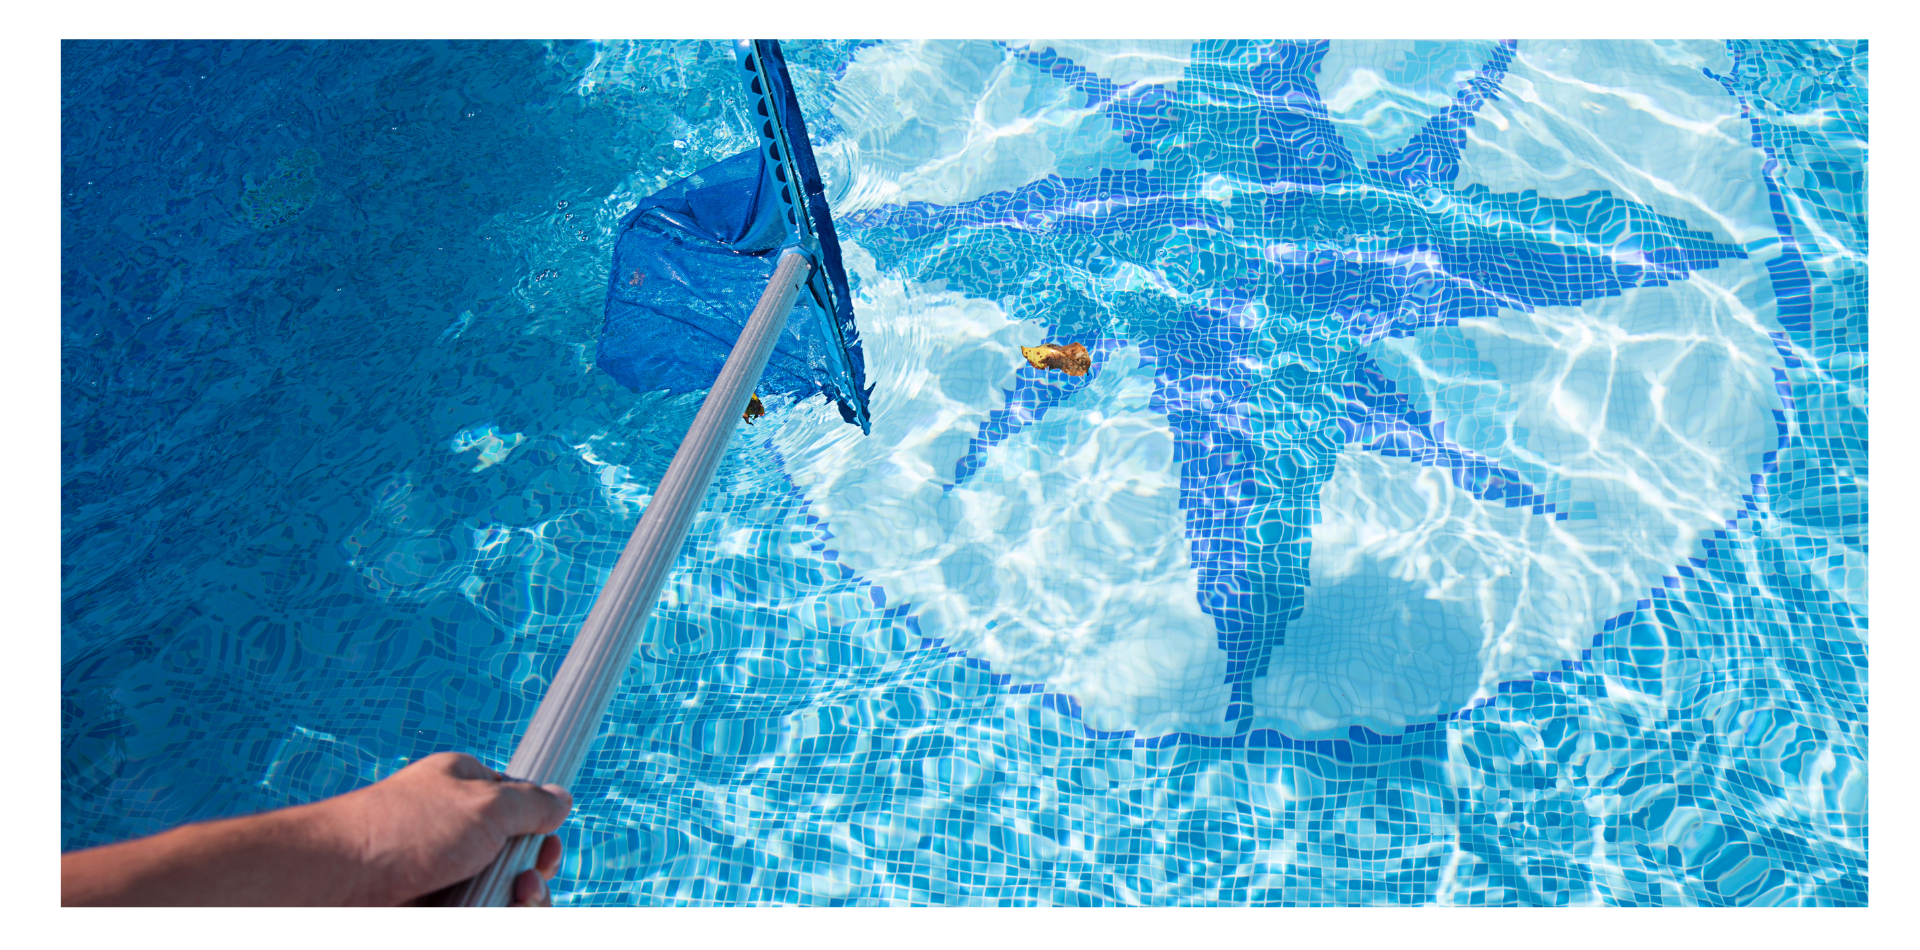 Swimming pool service in Charlotte County Florida